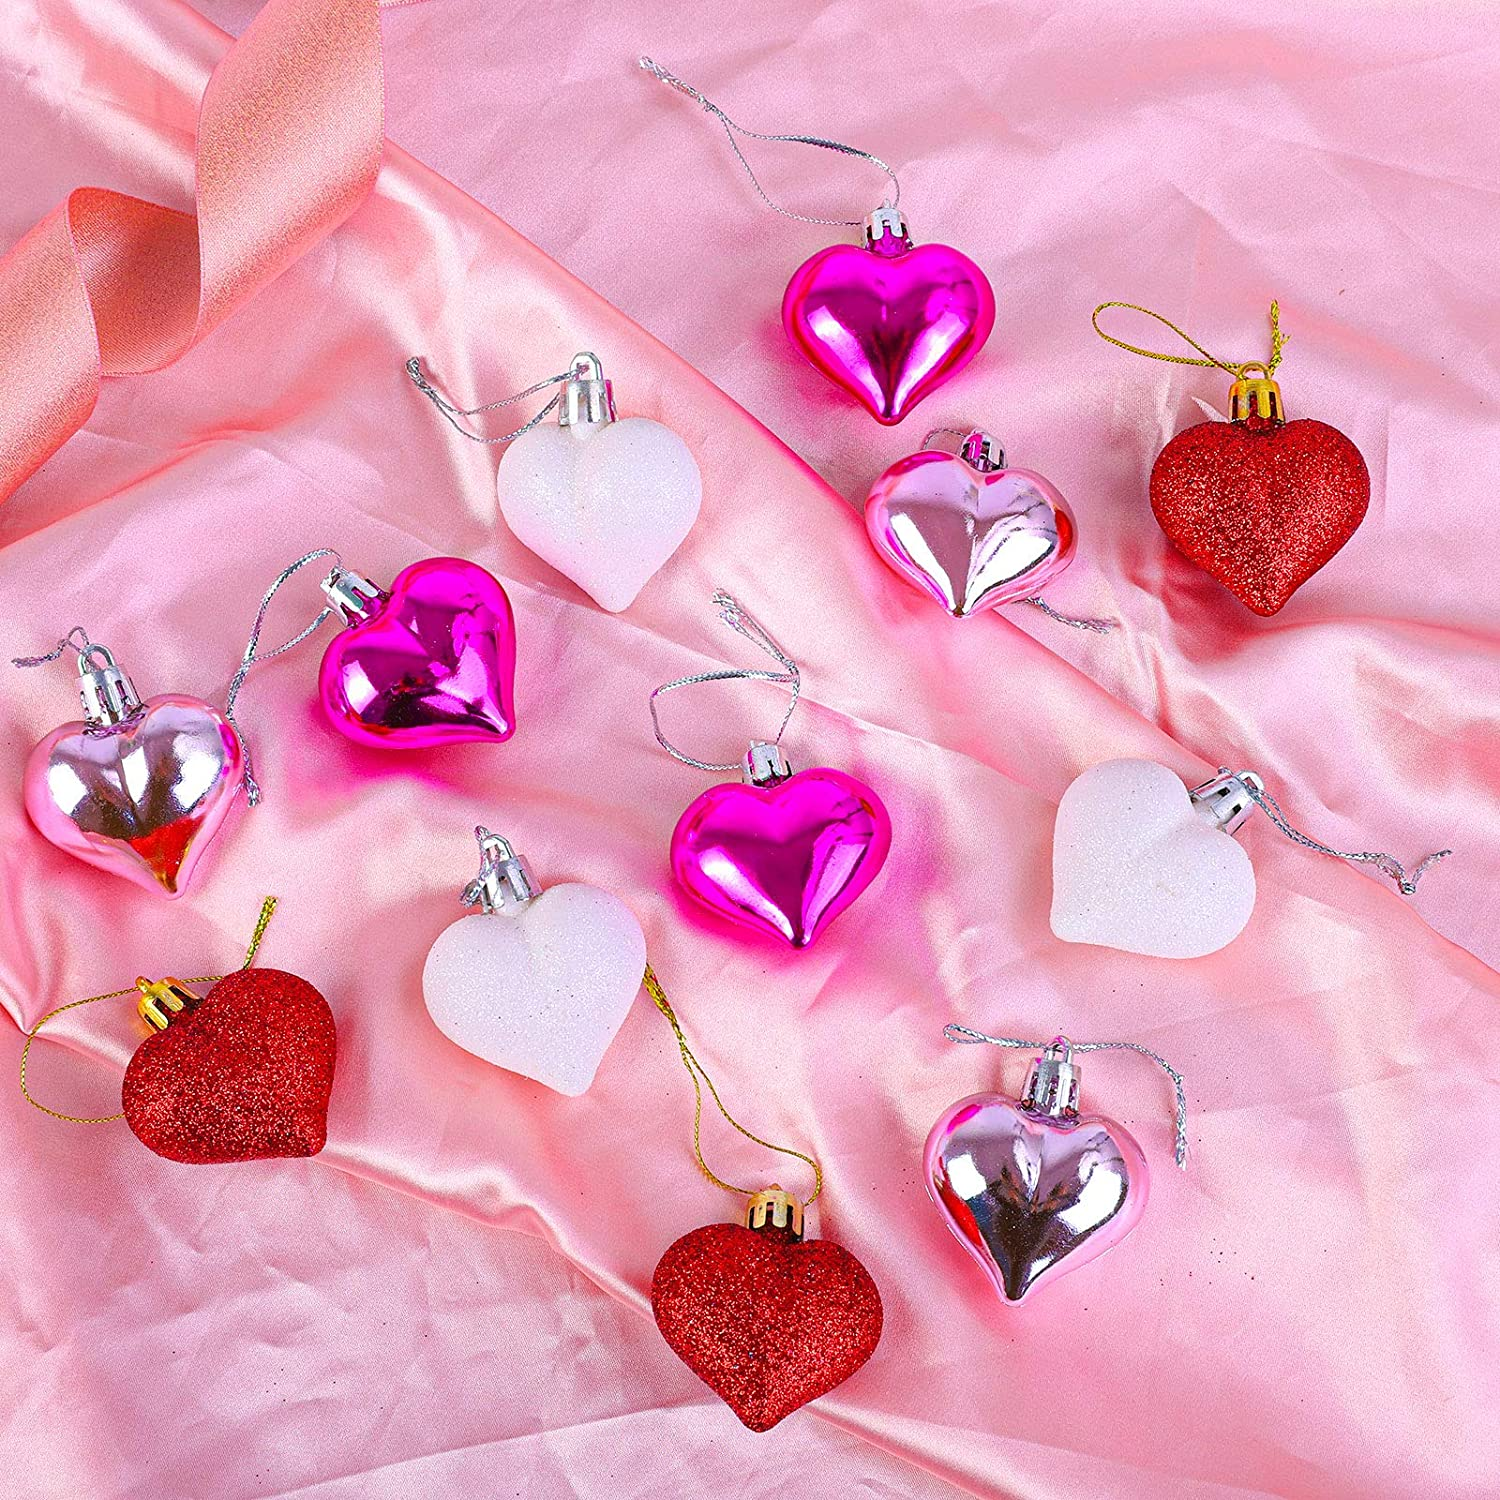 Aneco 36 Pack Valentines Heart Baubles Heart Shaped Ornaments for Valentines Day Decoration or Home Decor 3 Styles